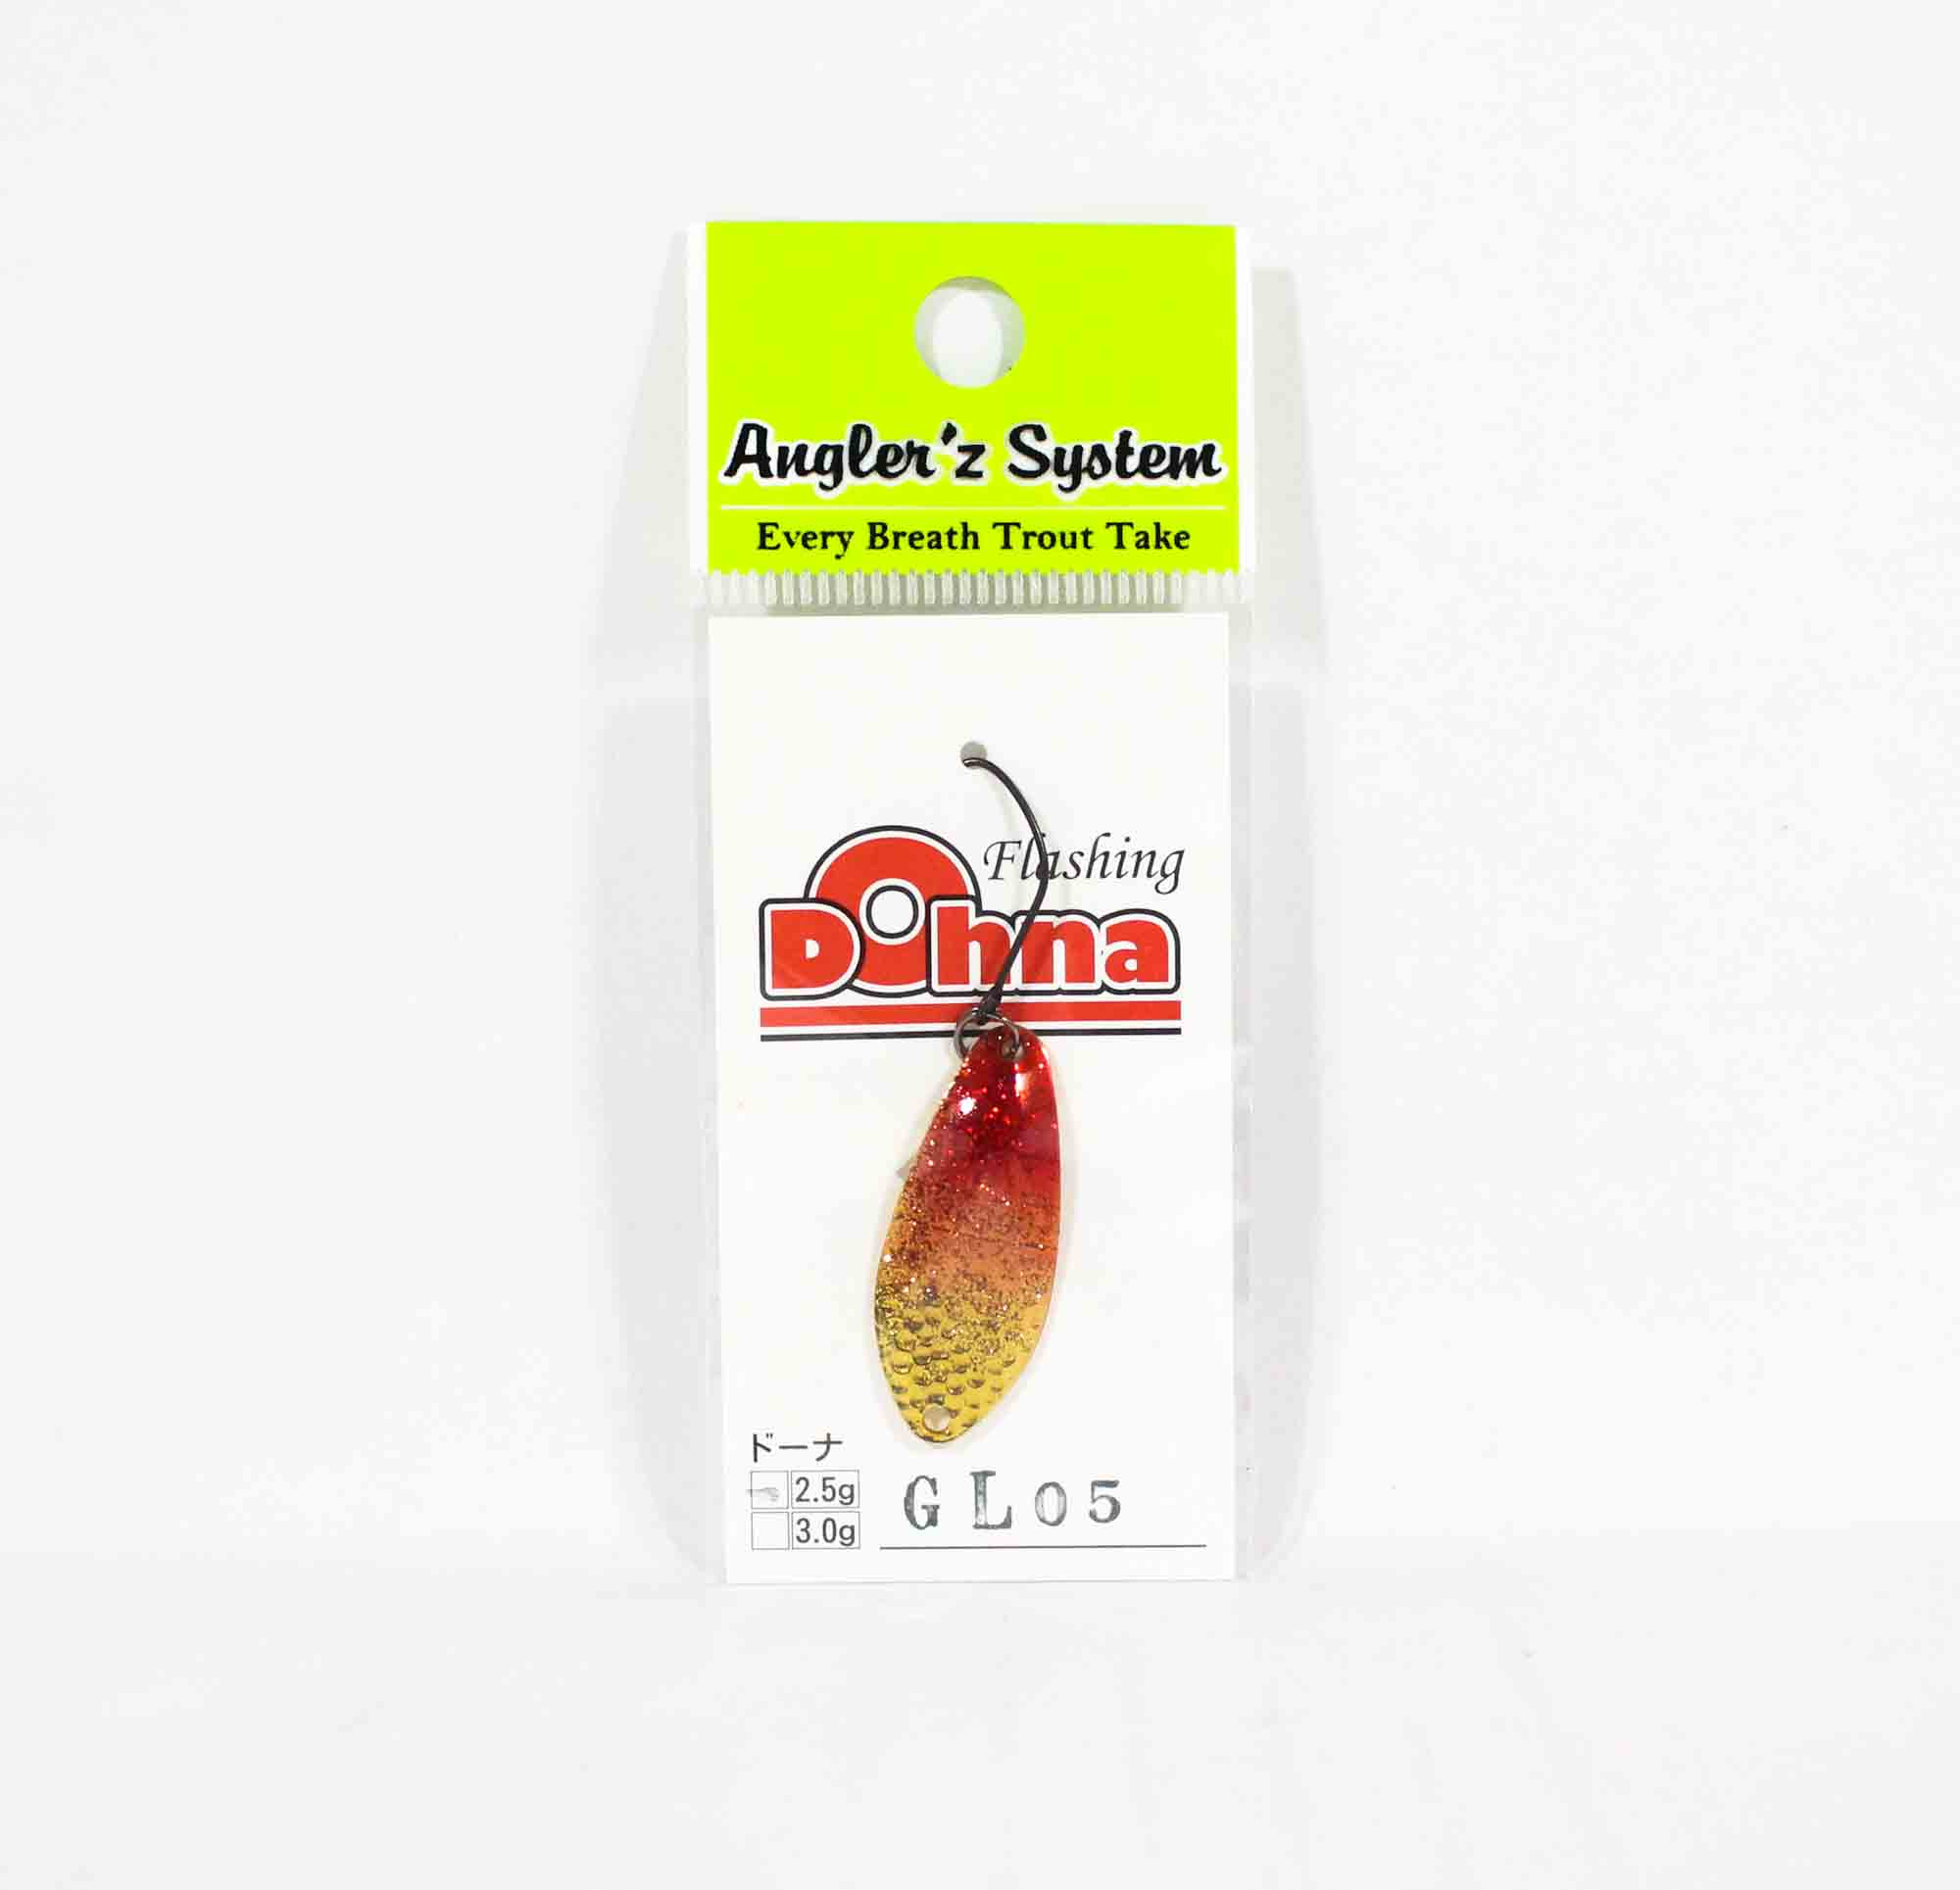 Anglers System Antem Dohna 2.5 grams Spoon Sinking Lure GL05 (6581)